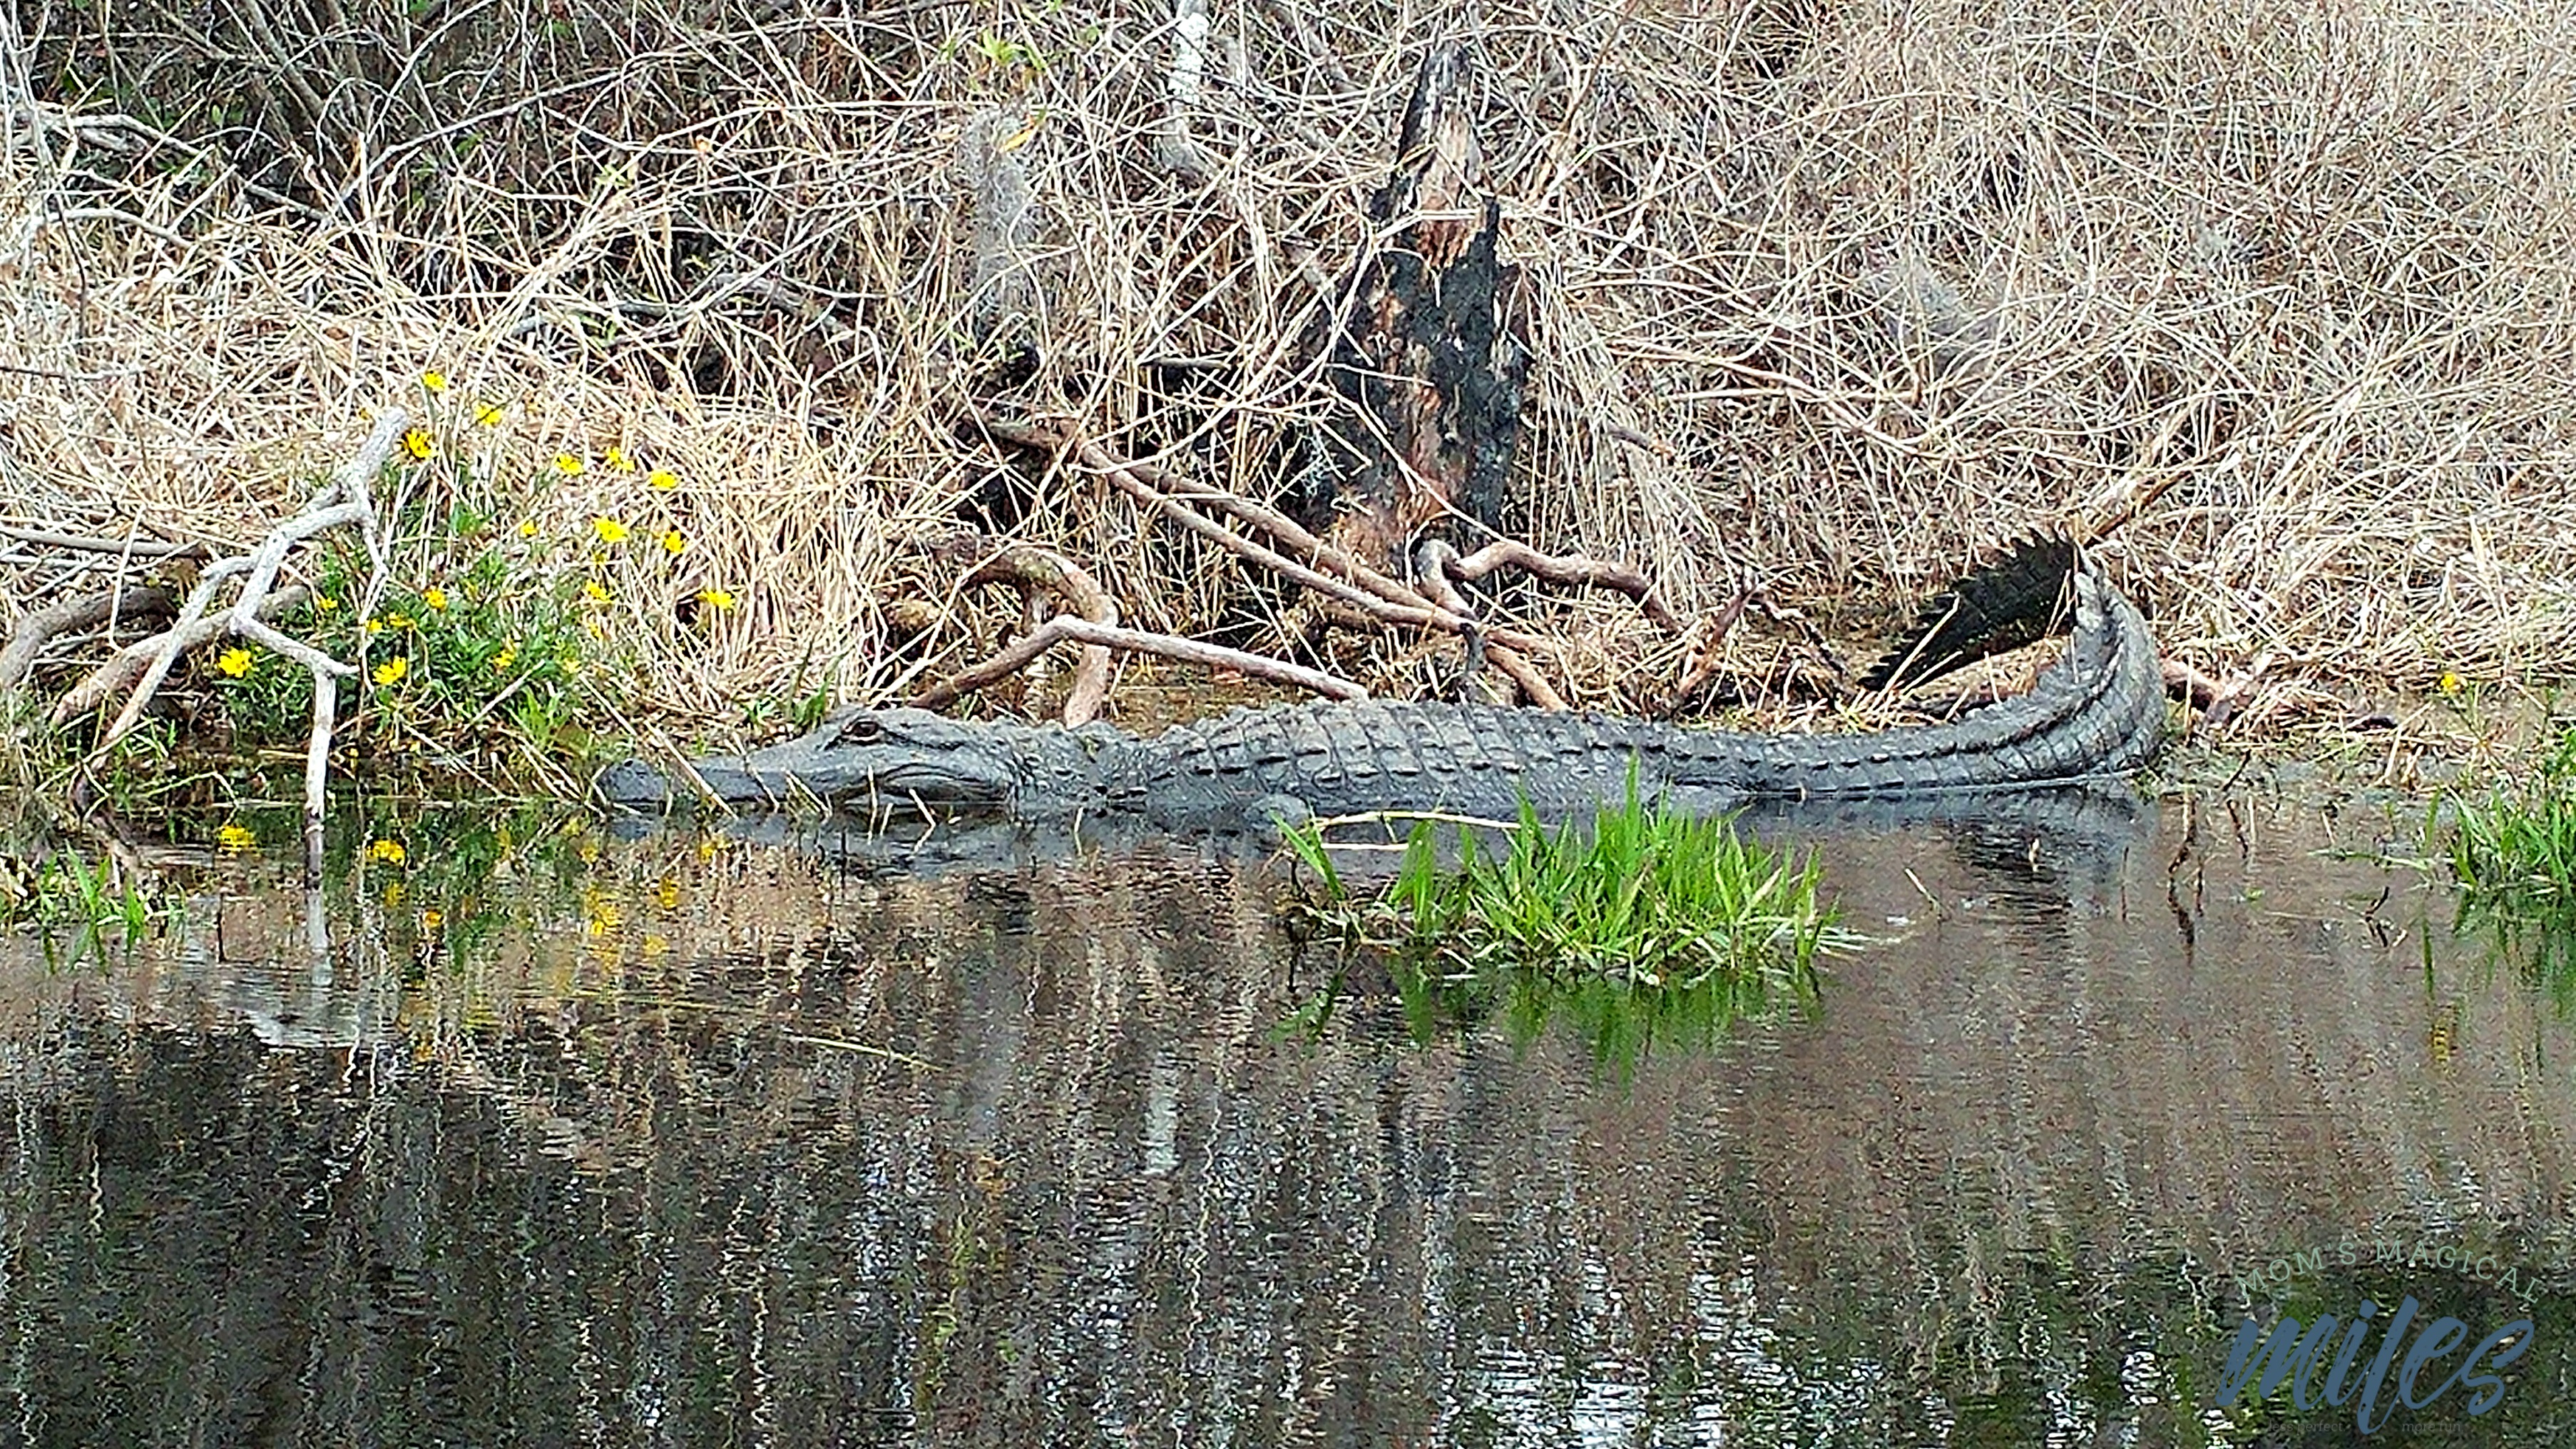 If you need to see gators close up and personal, the Okefenokee Swamp is THE place to be! Take a boat tour to make the most of it.